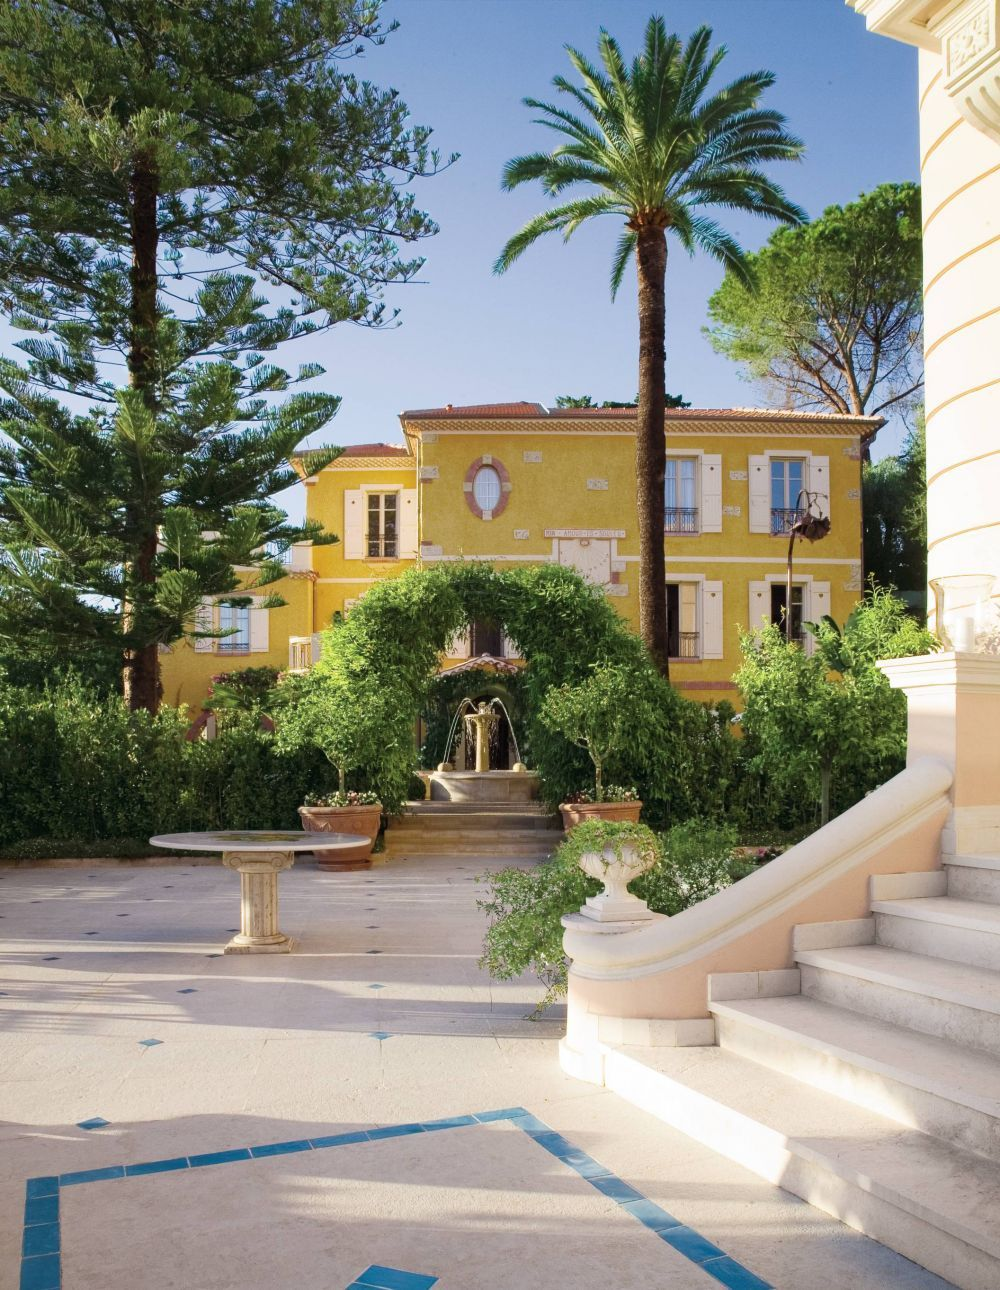 Lovely Traditional Exterior By NH Design In Saint Jean Cap Ferrat, France